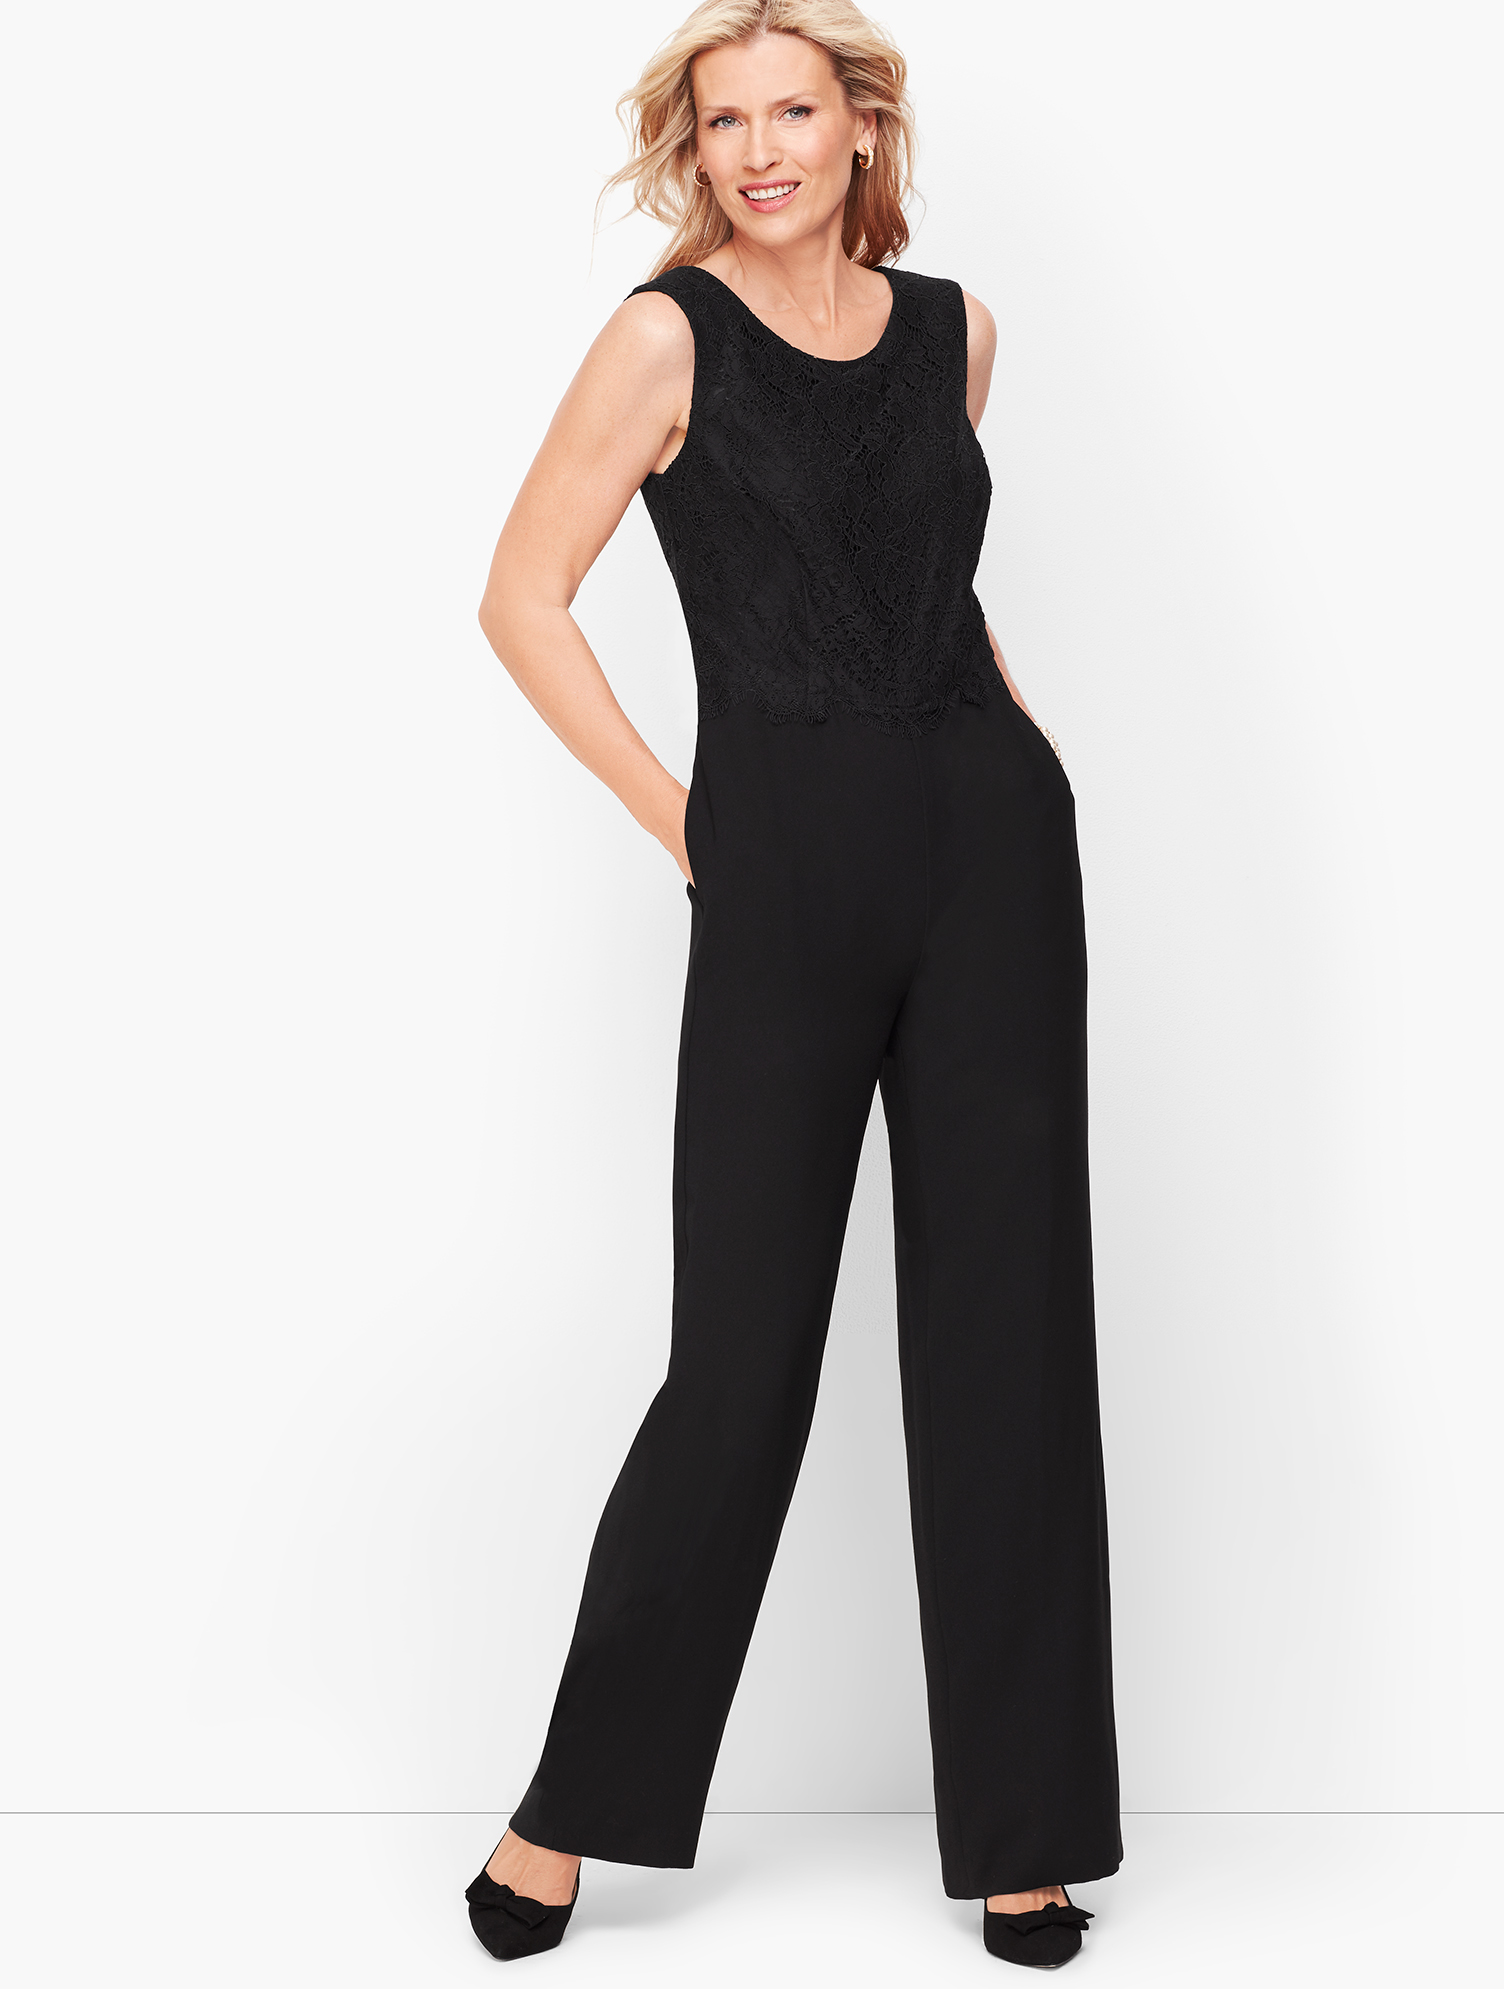 70s Jumpsuit | Disco Jumpsuits – Sequin, Striped, Gold, White, Black Crepe  Lace Jumpsuit - BLACK - 16 - Talbots $104.99 AT vintagedancer.com